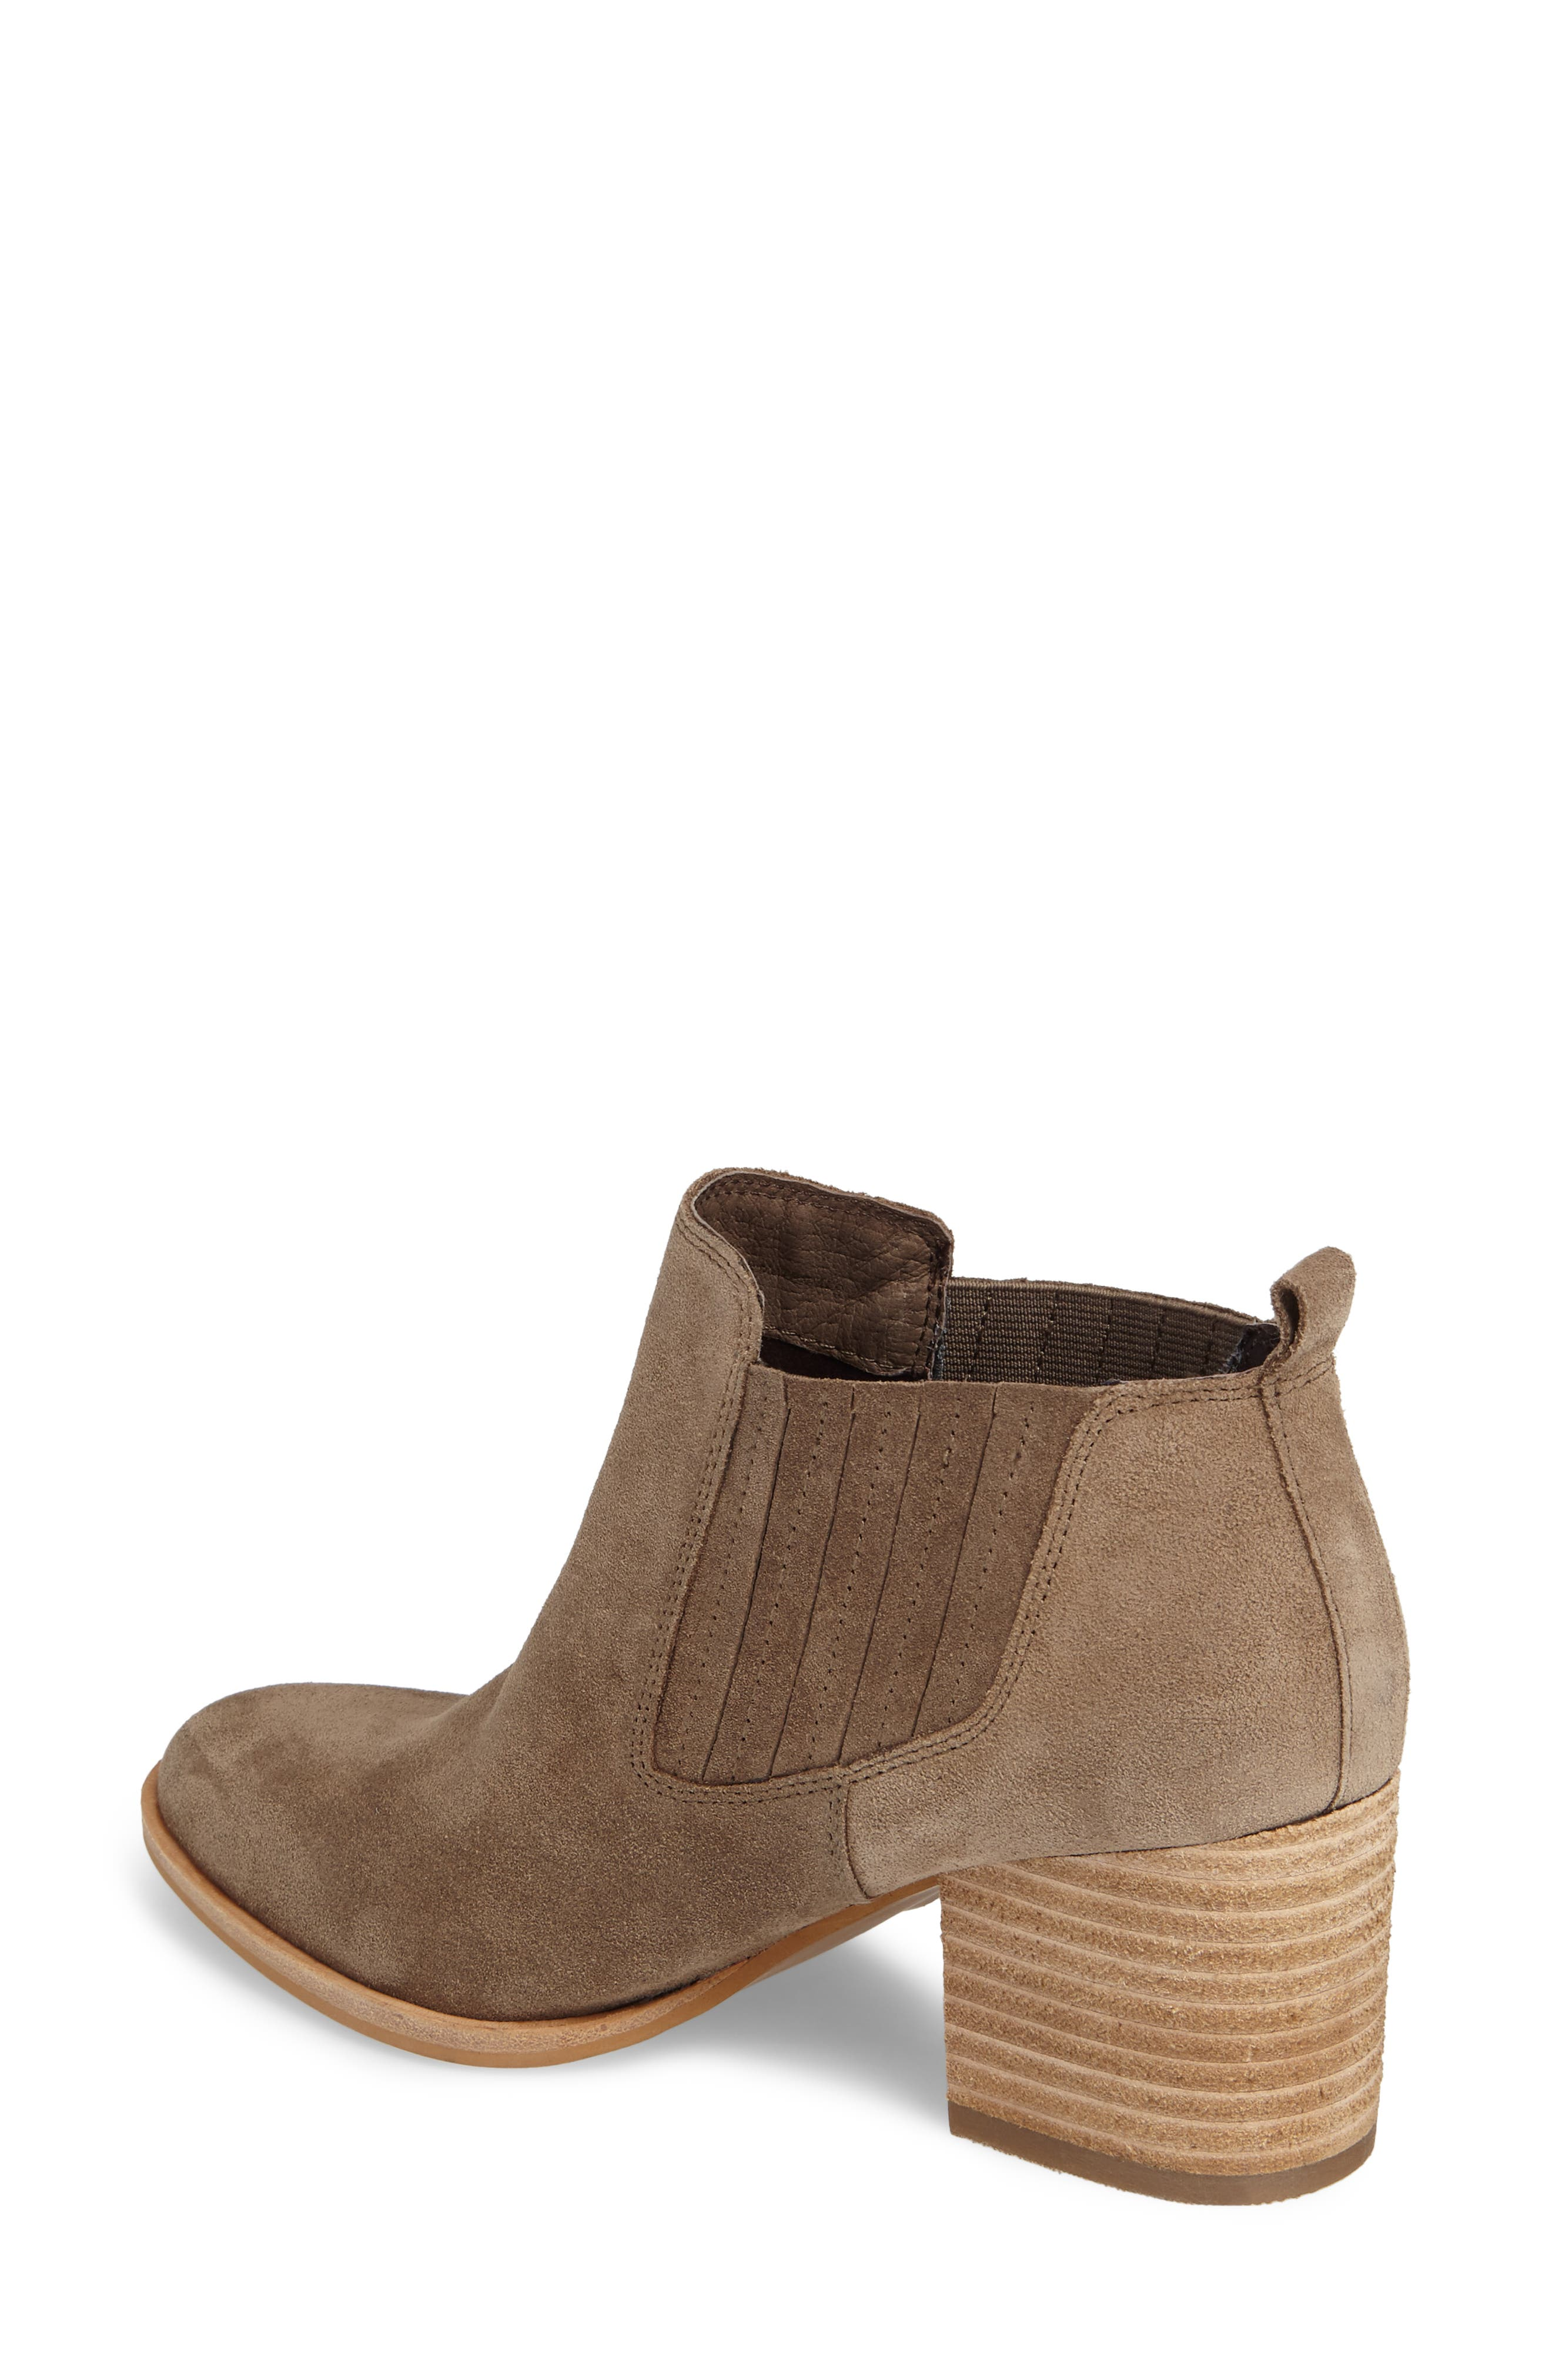 ISOLÁ, Olicia Gored Bootie, Alternate thumbnail 2, color, MARMOTTA LIGHT GREY SUEDE